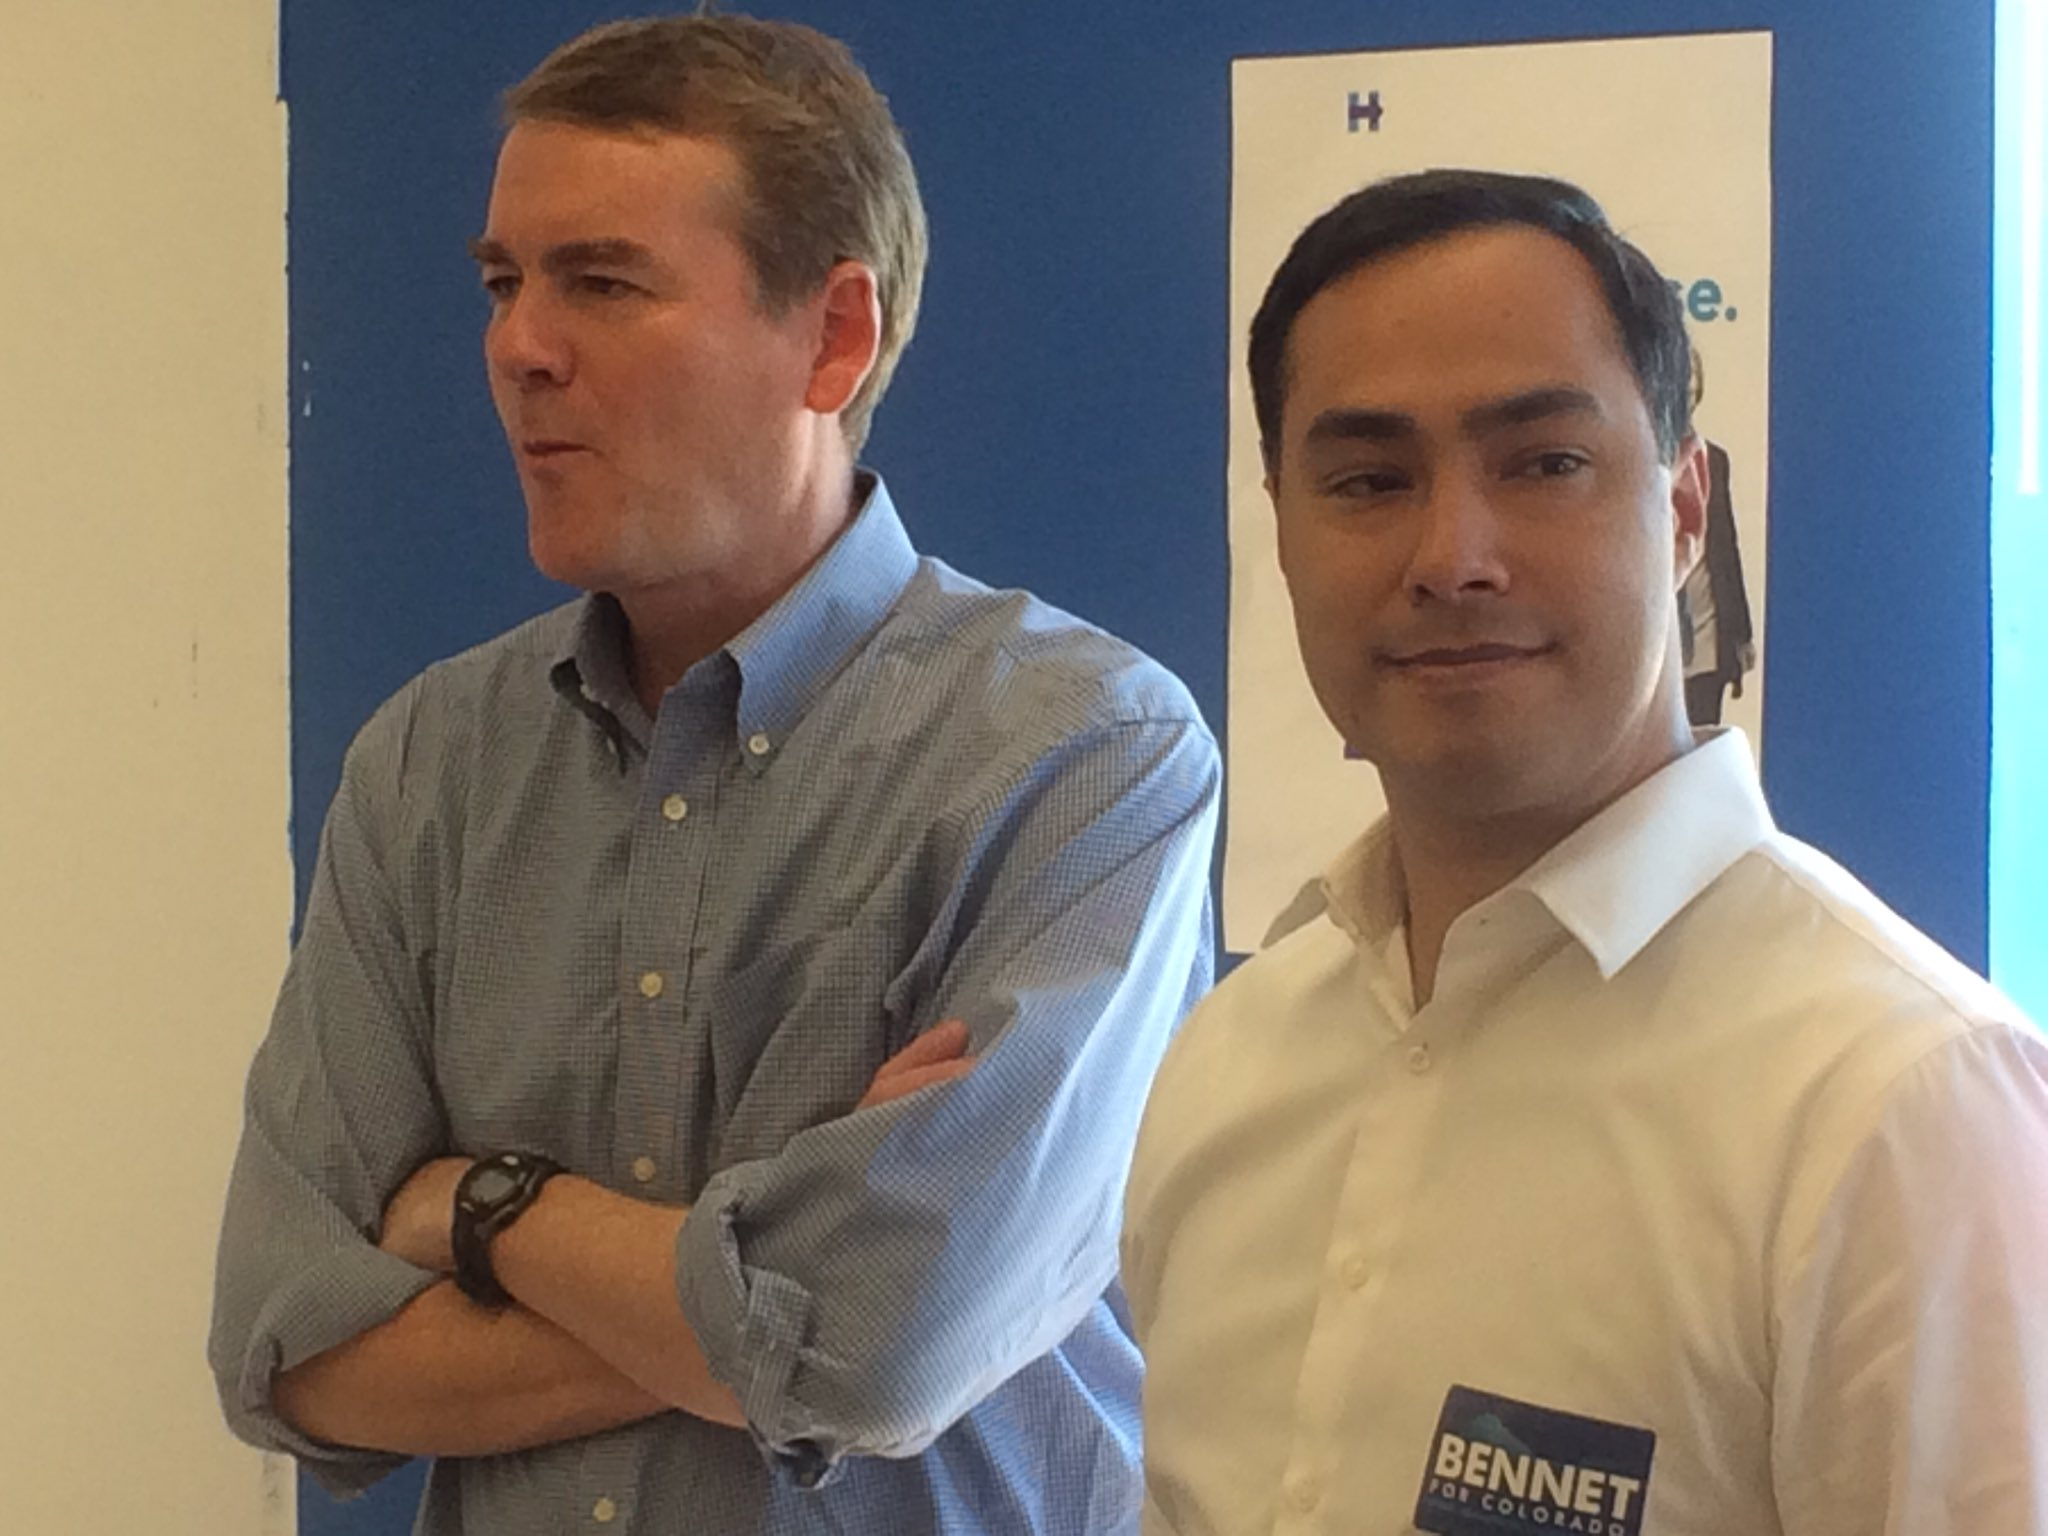 ColoradoU.S. Sen. Michael Bennet and Texas U.S. Rep.Joaquin Castro at the Commerce City Democratic Party office headquarters opening Saturday (Photo by Ernest Luning/The Colorado Statesman).